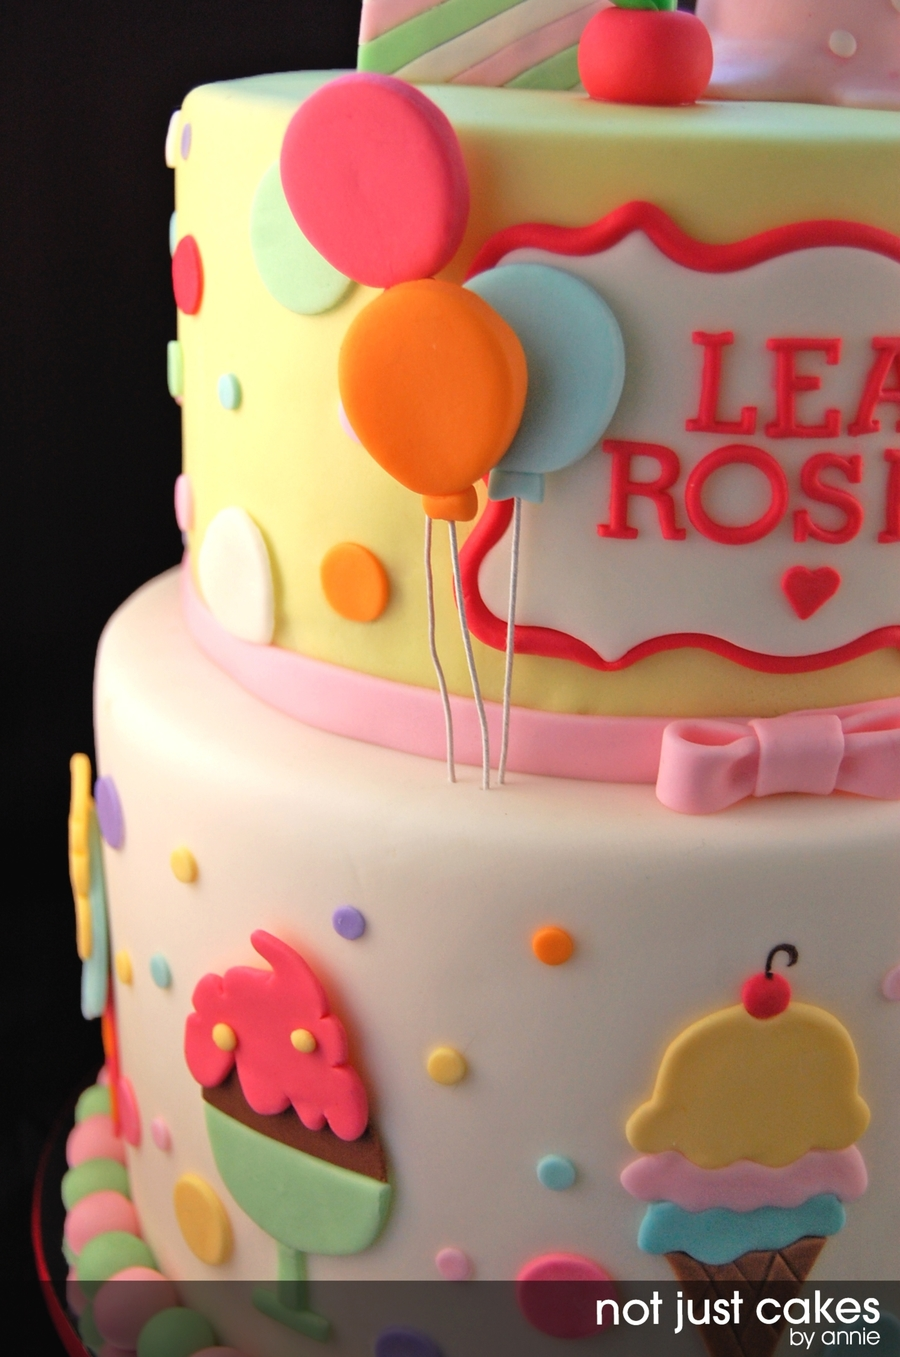 Ice Cream And Balloon Cake - CakeCentral.com